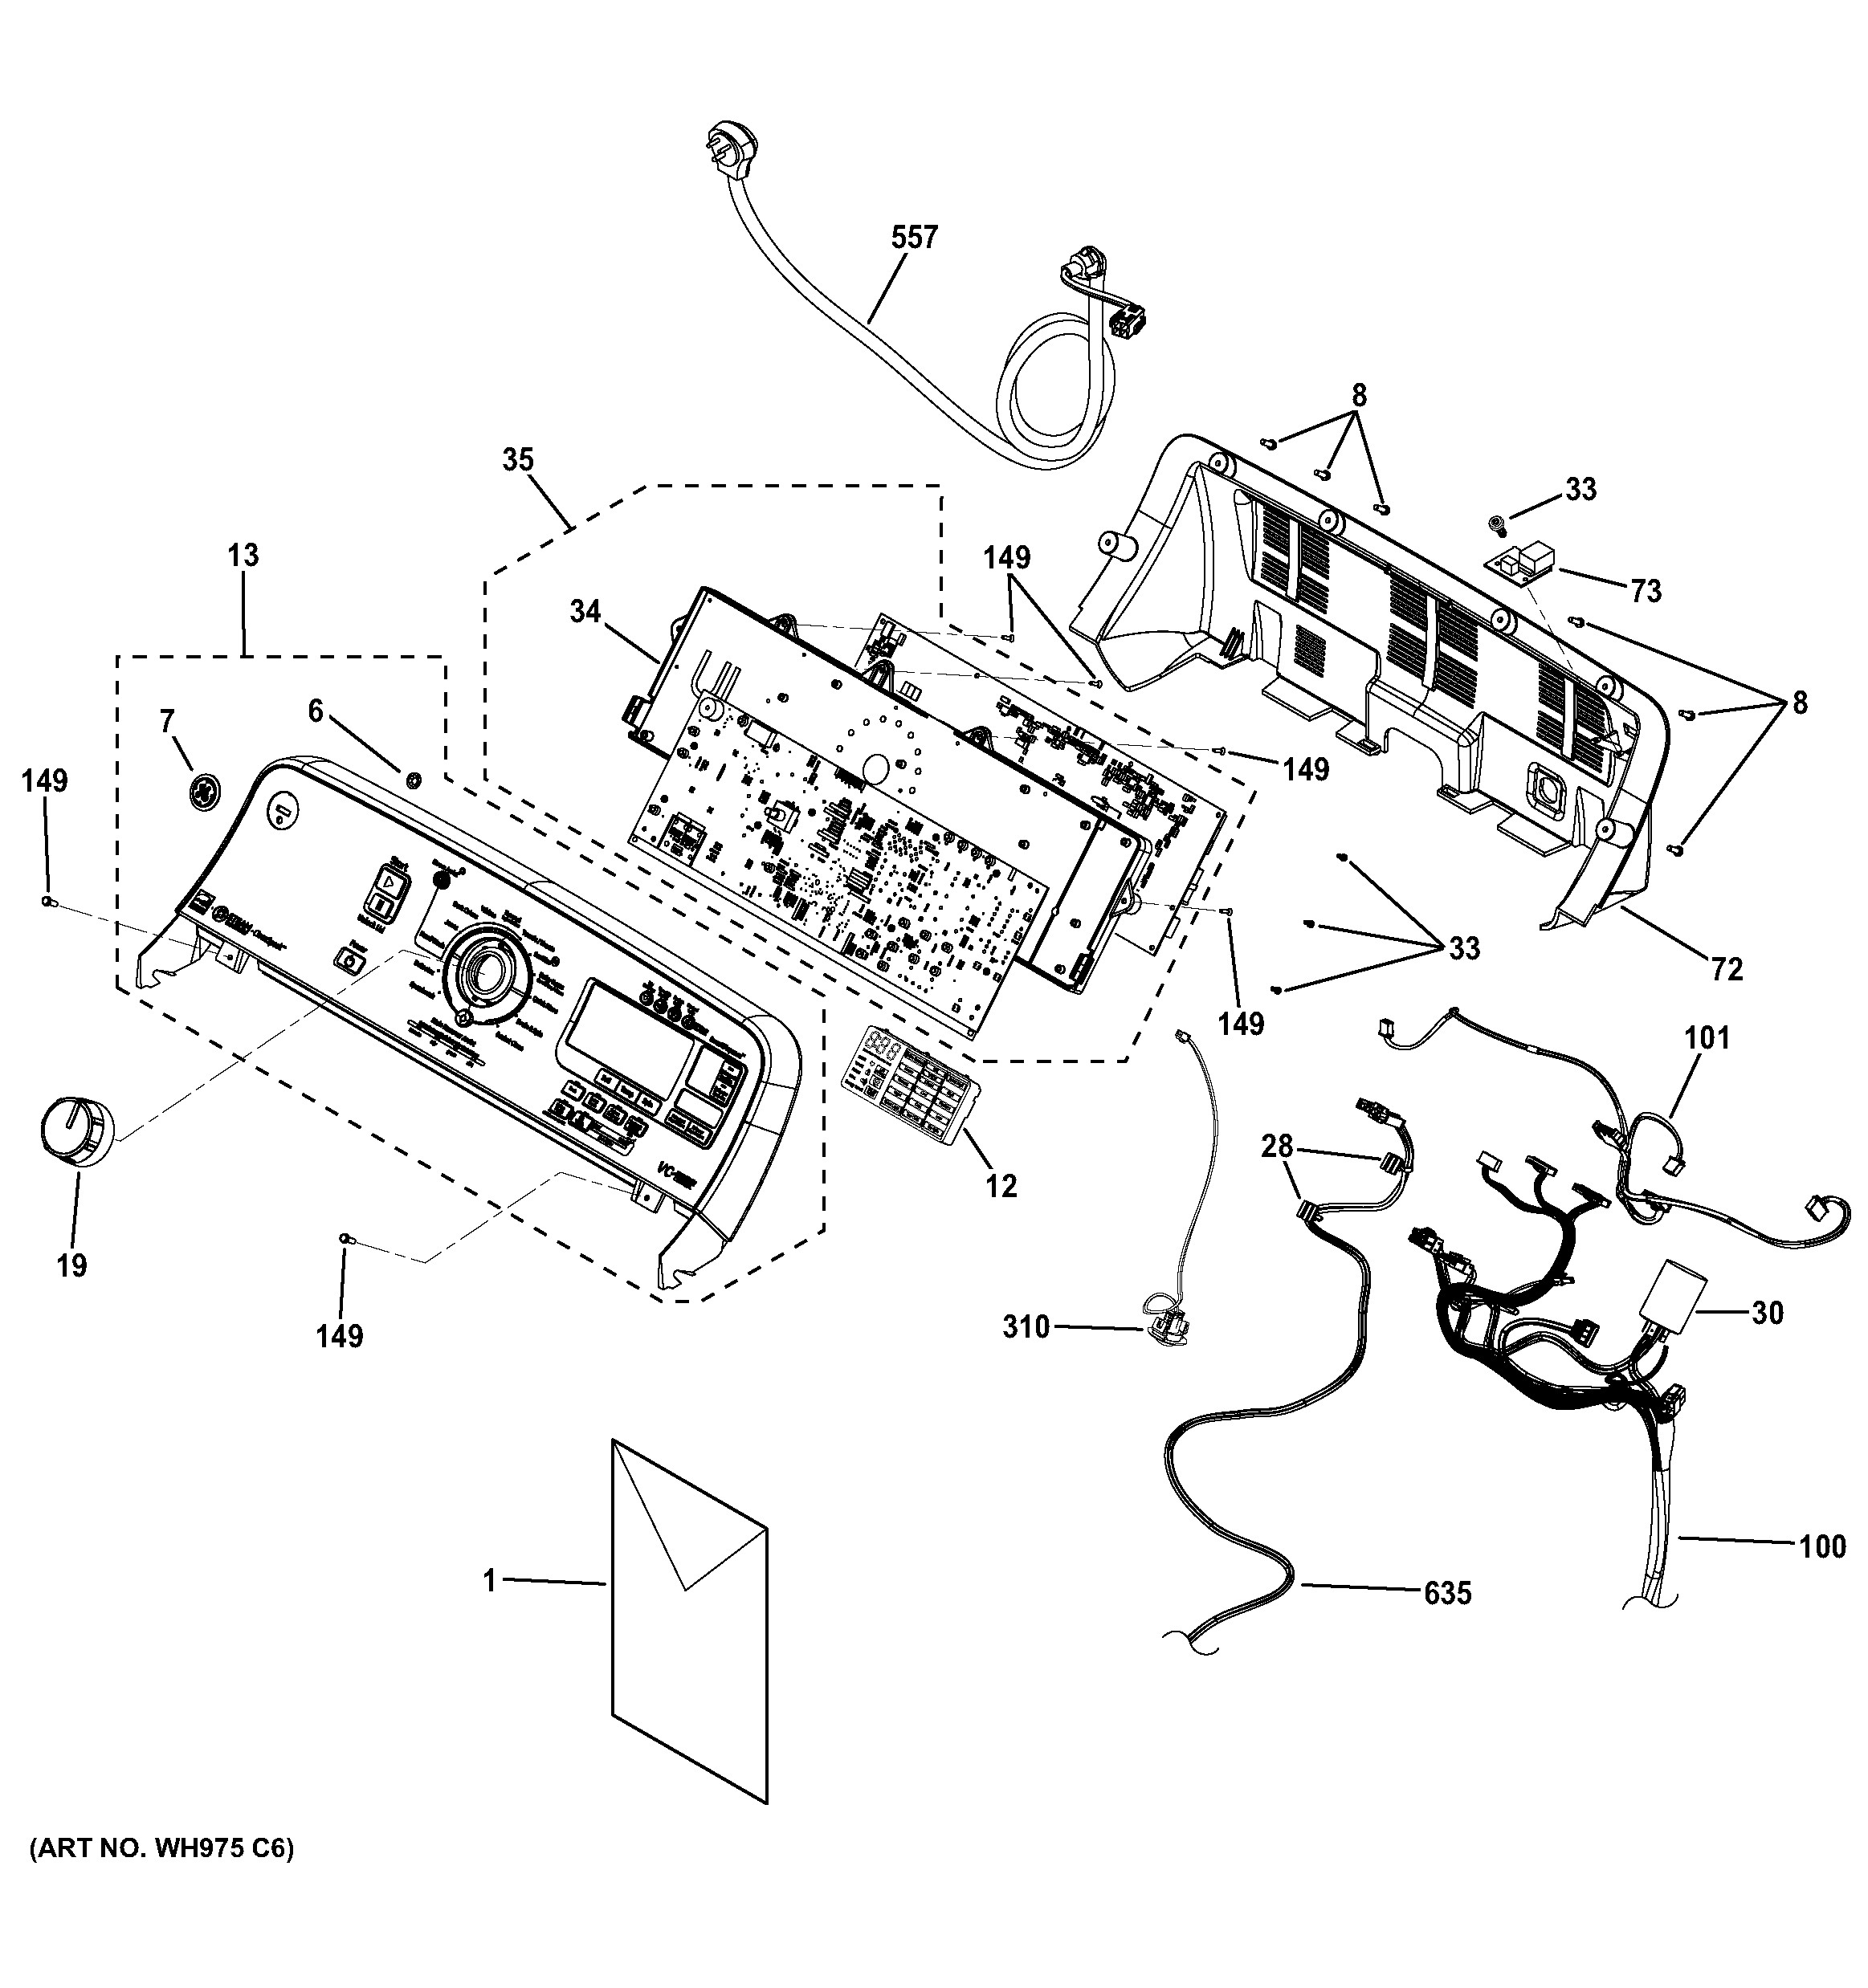 Two Stroke Engine Parts Diagram Ge Model Gtwn8250d0ws Residential Washers Genuine Parts Of Two Stroke Engine Parts Diagram